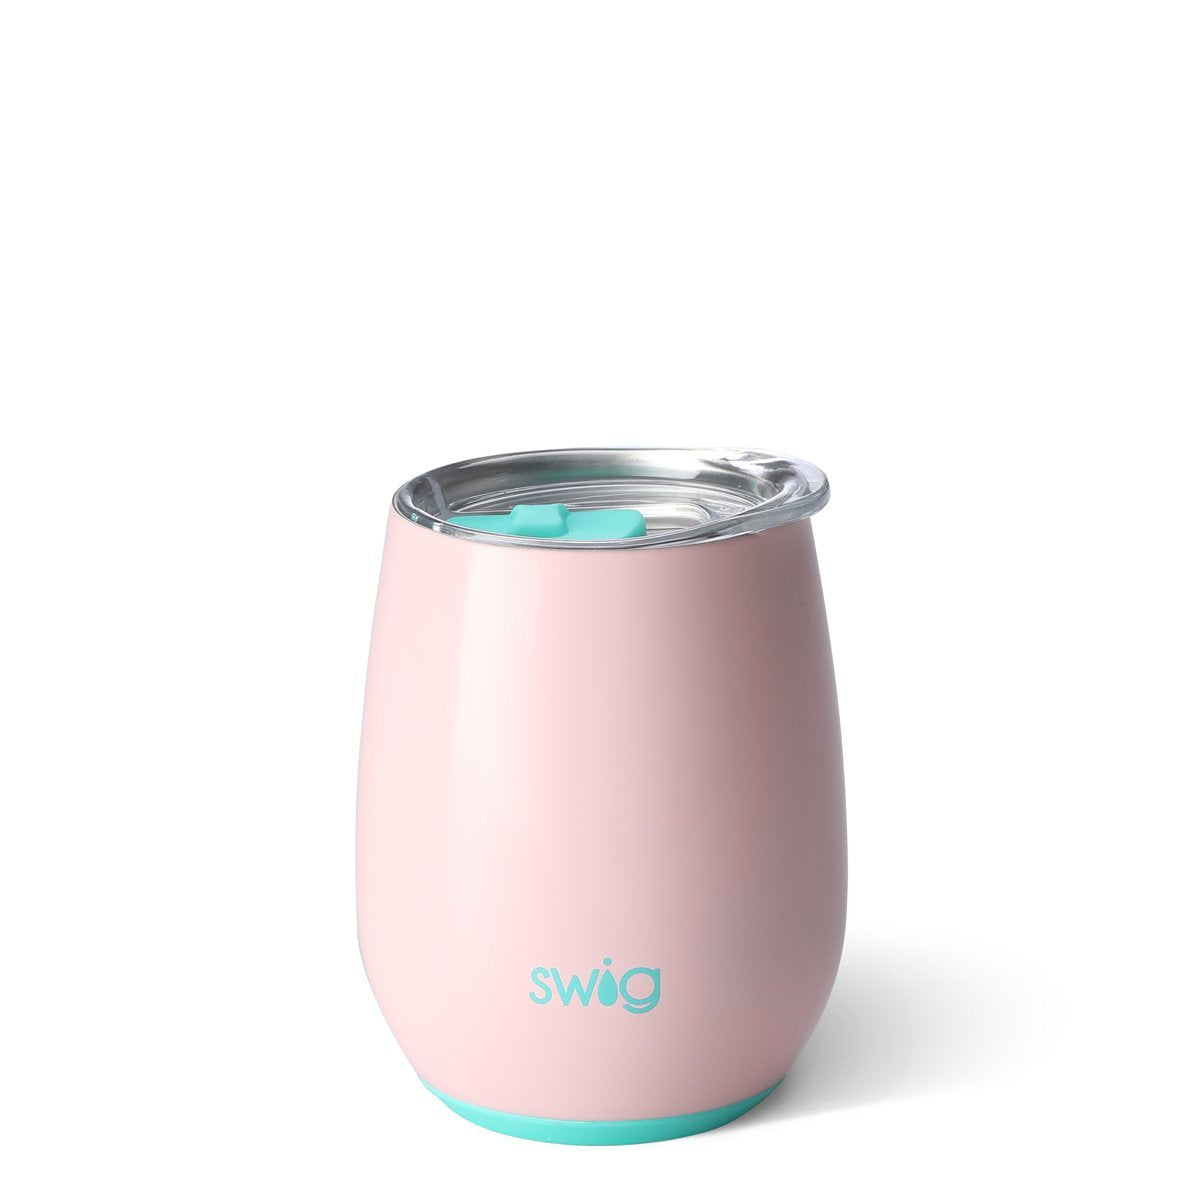 Swig - 14oz Stemless Wine Cup - BLUSH